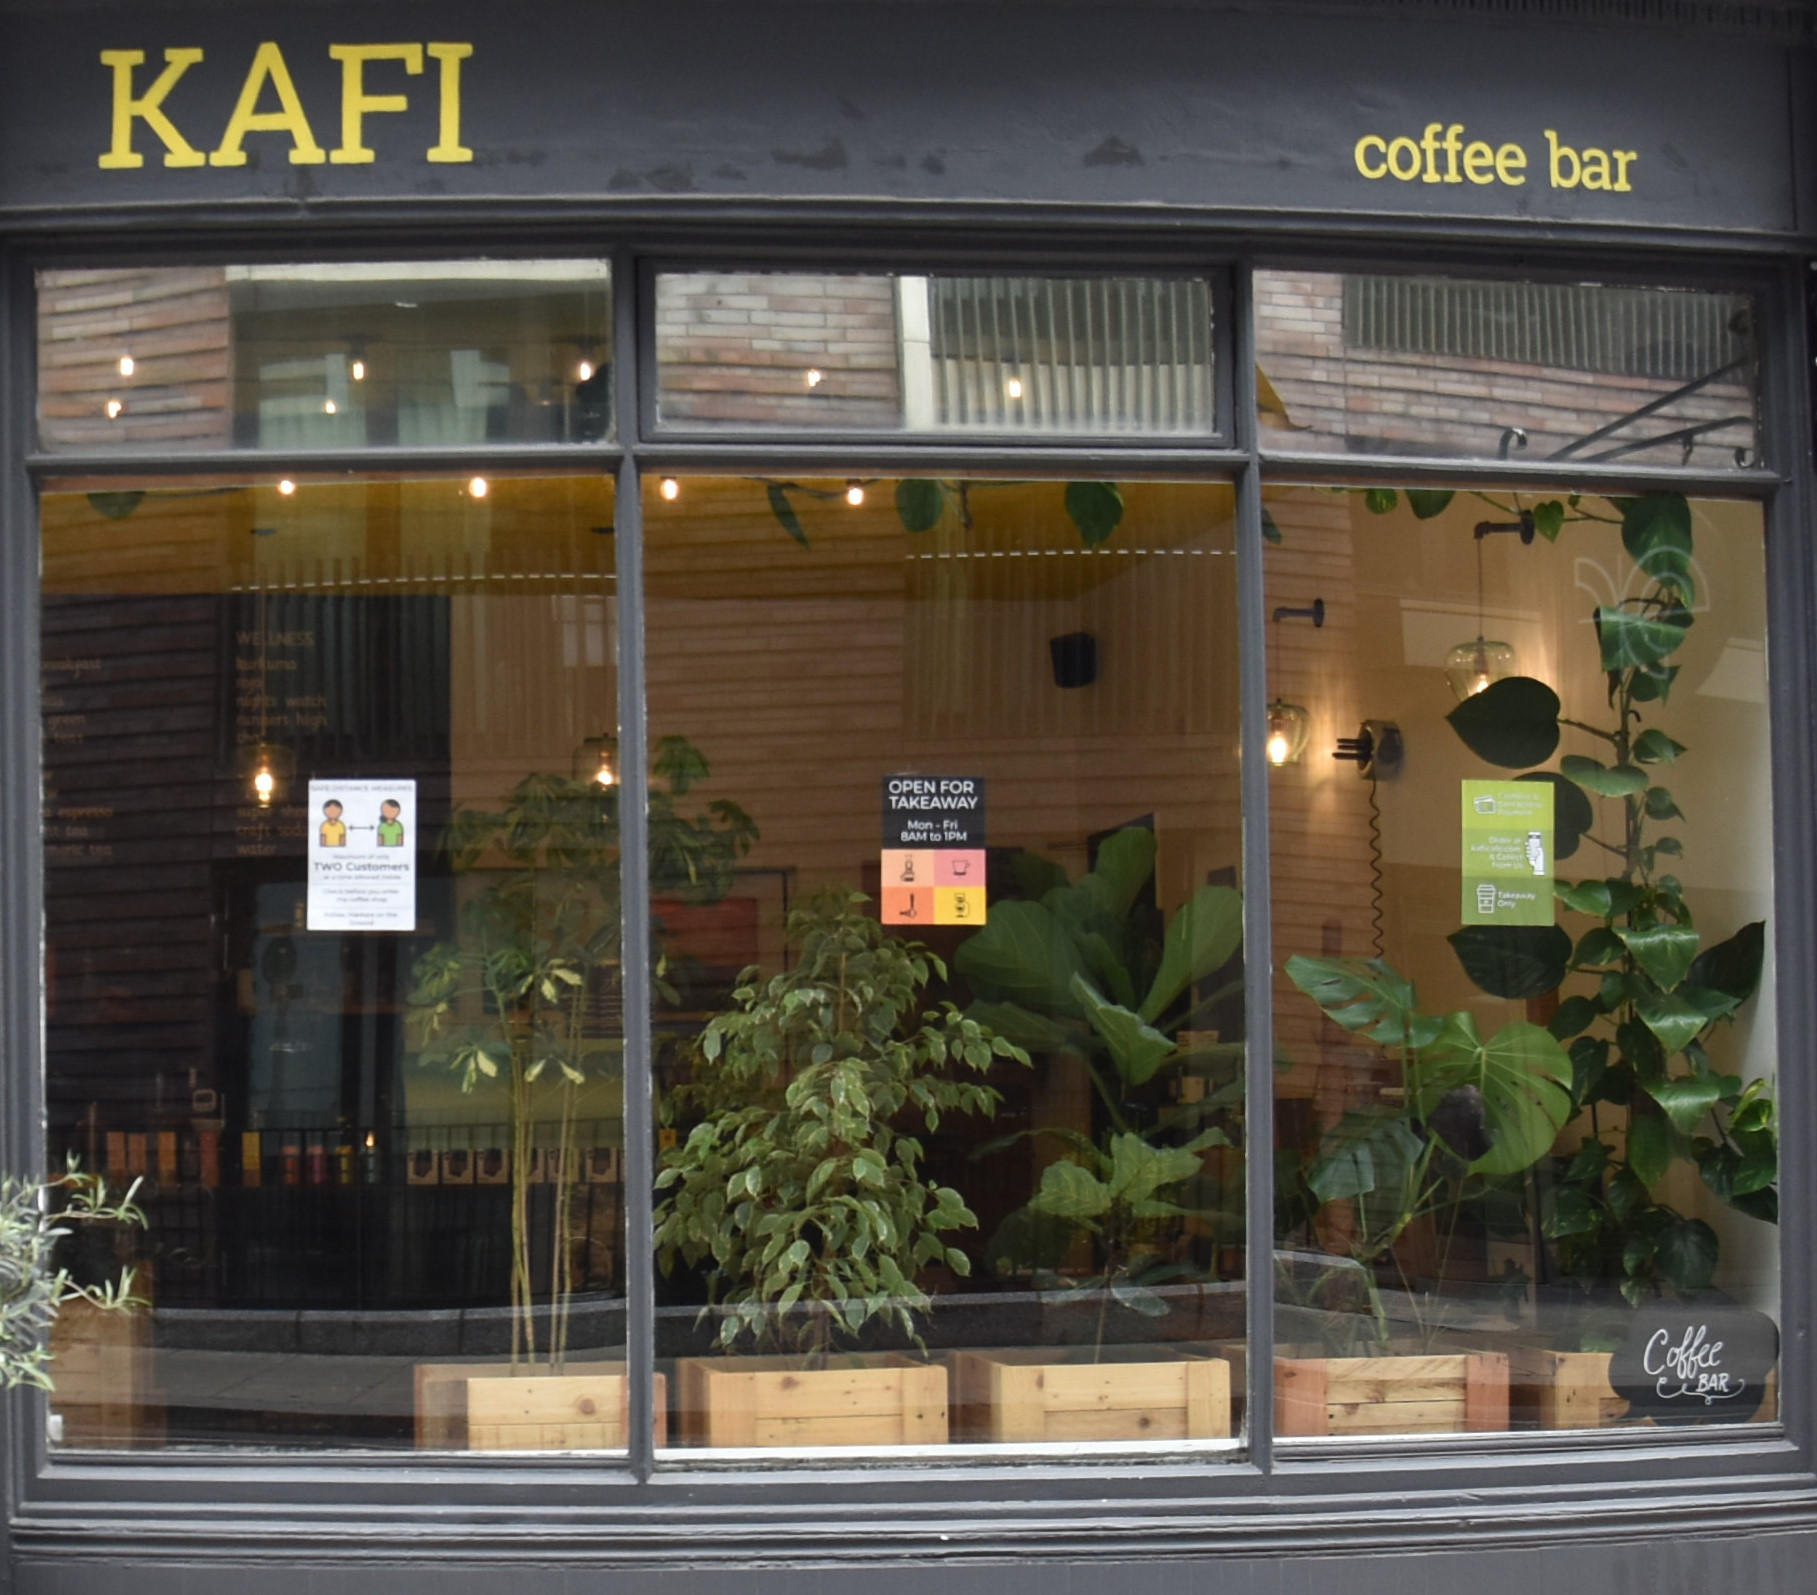 Kafi, in Fitzrovia, reborn as a takeaway-only coffee shop during COVID-19.